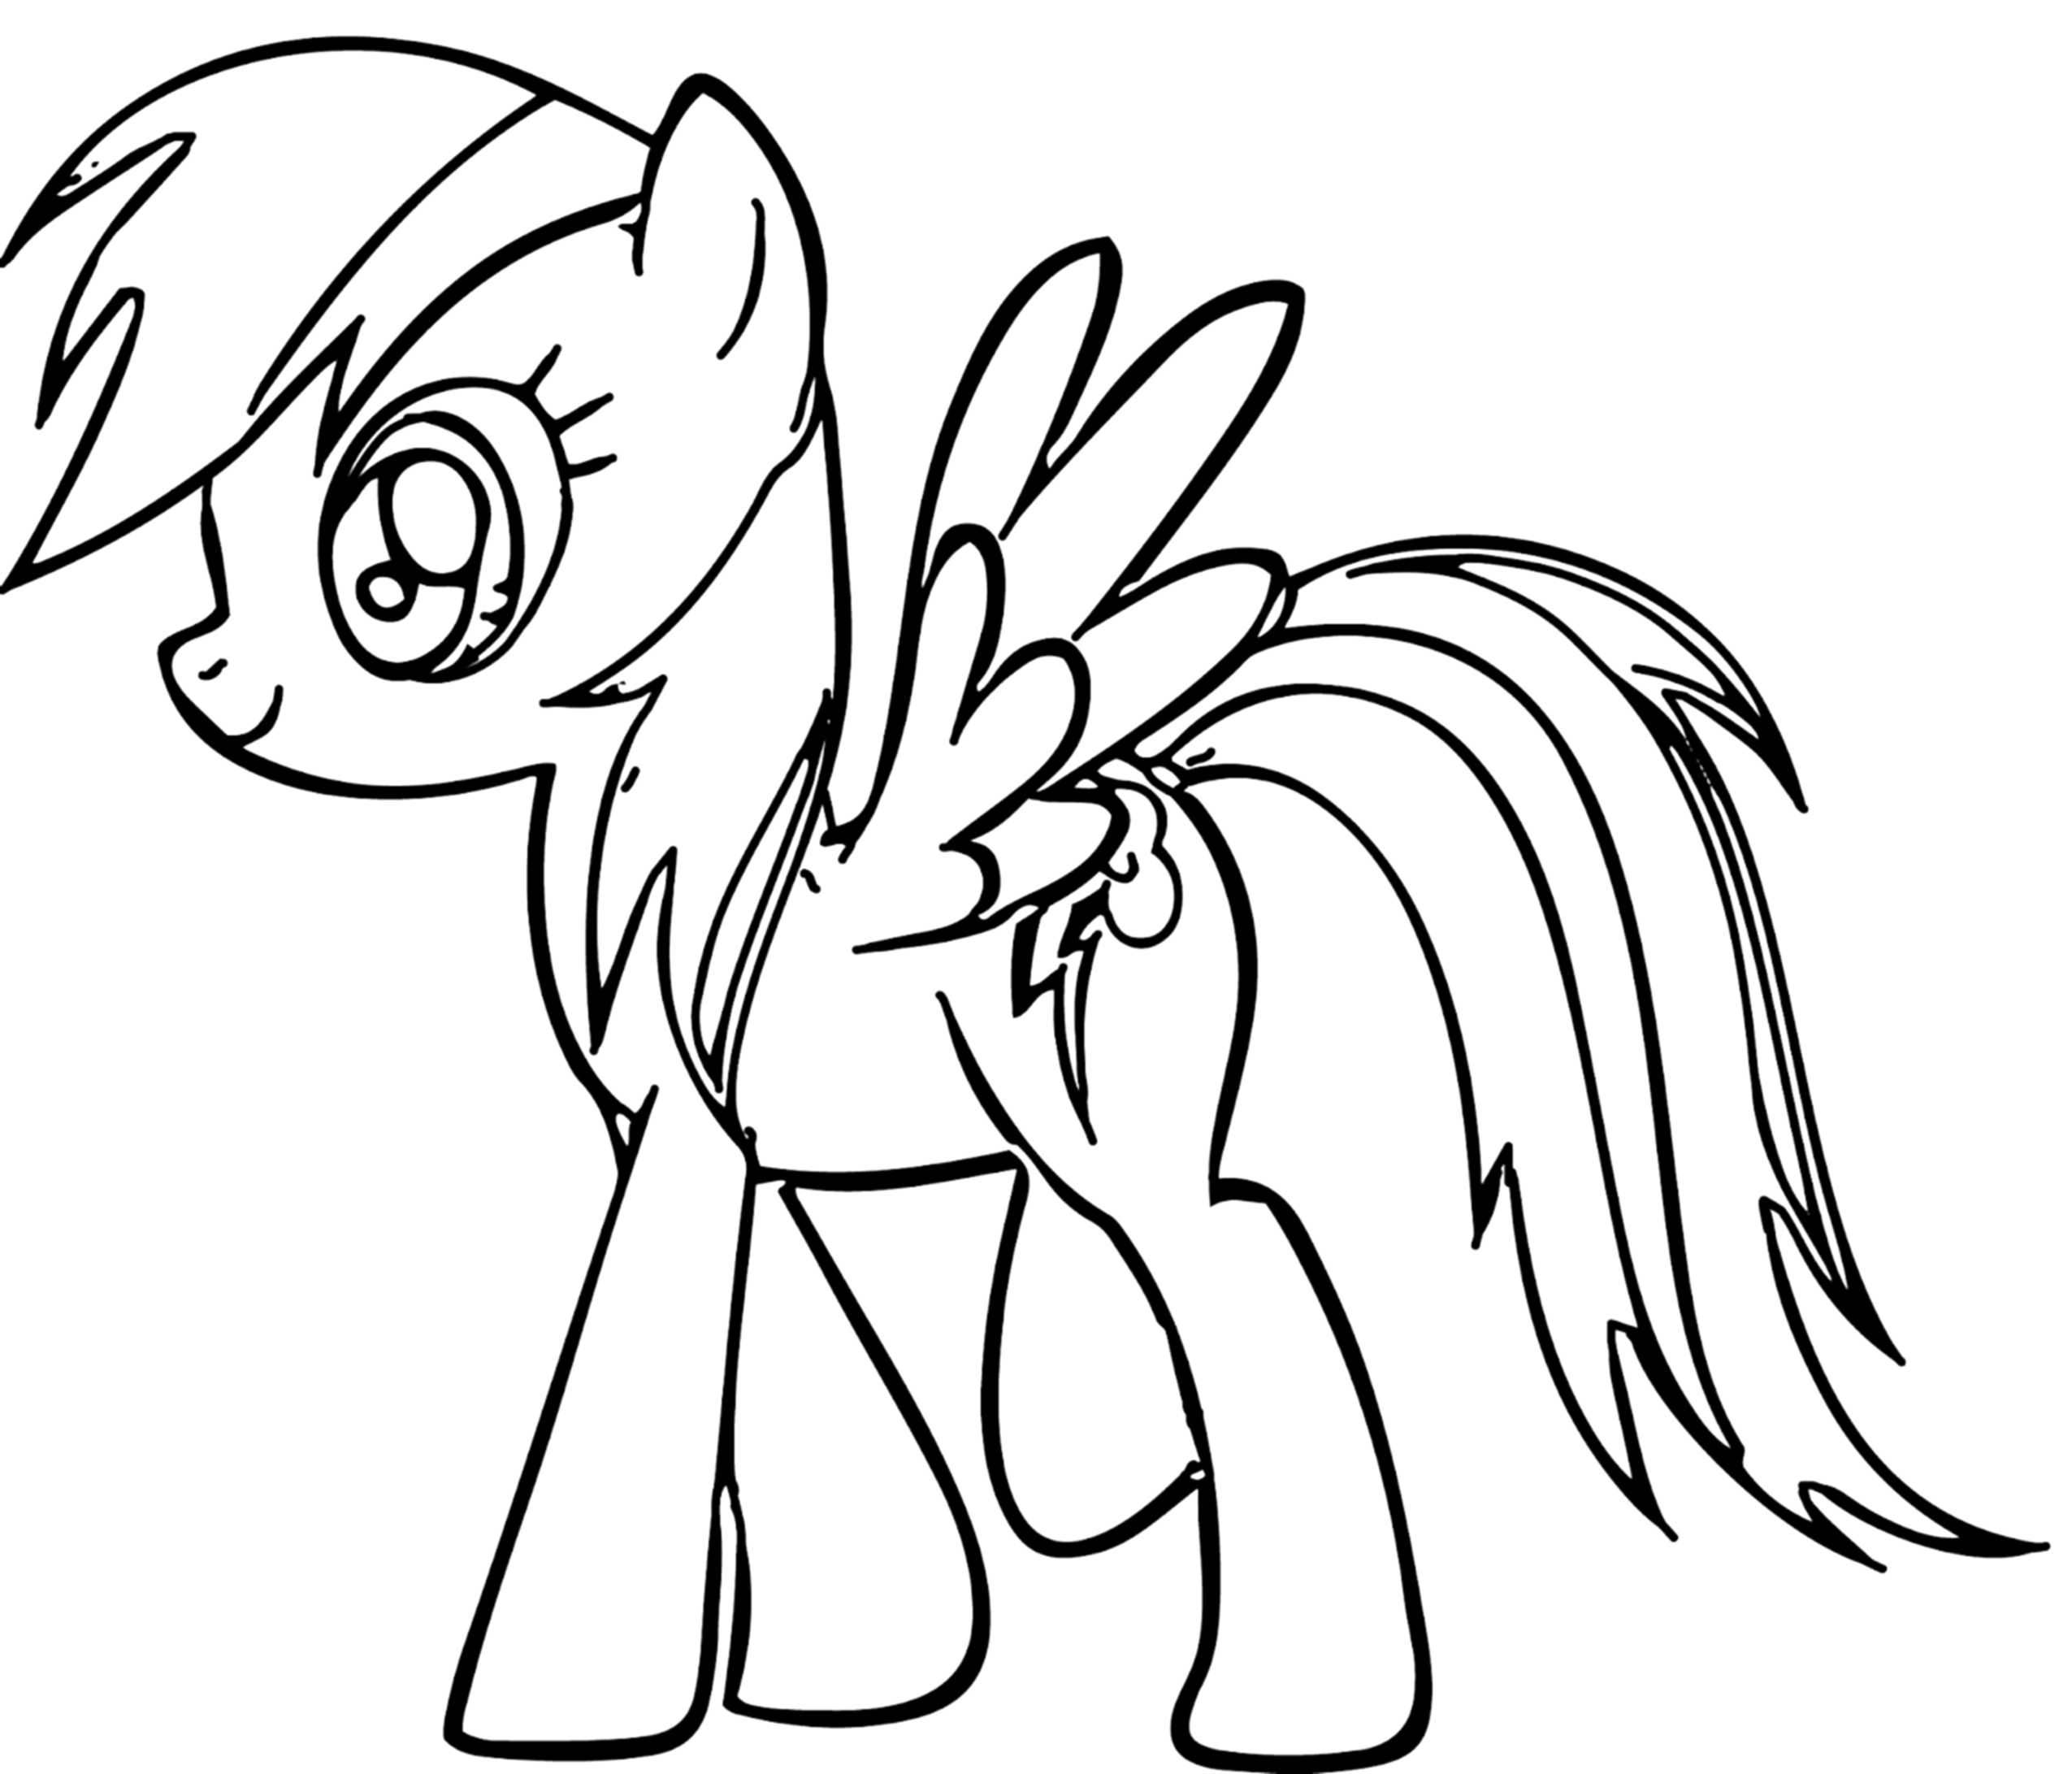 Coloring Pages Rainbow Dash Coloring Pages To Print mlp coloring pages rainbow dash az cute my little pony printable kids